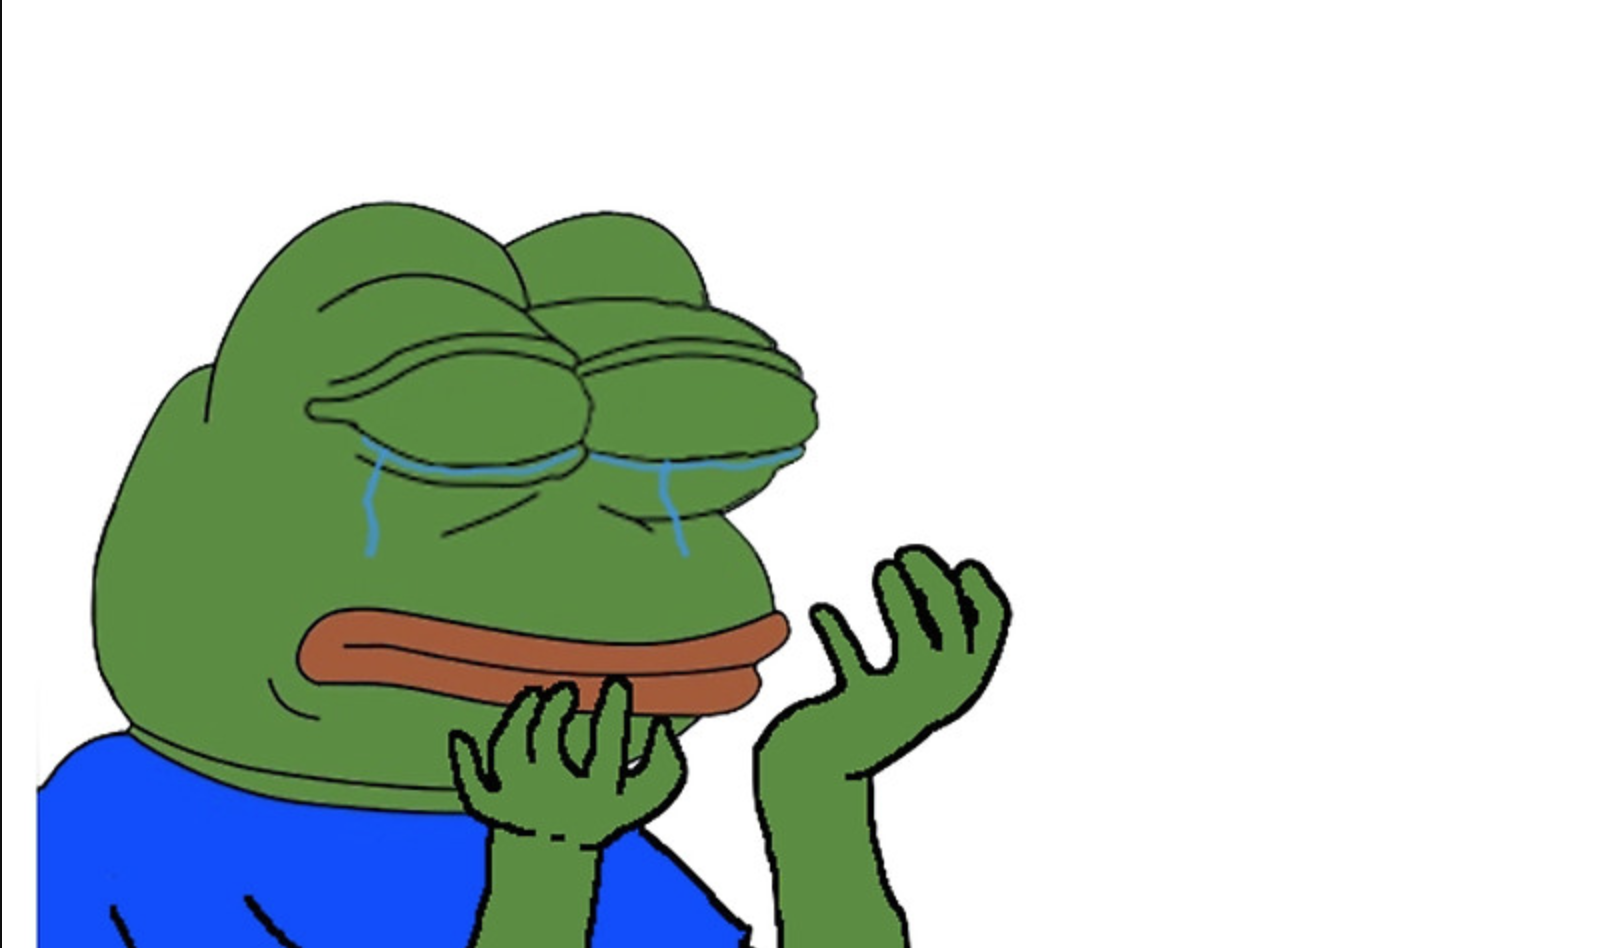 pepehands clipart